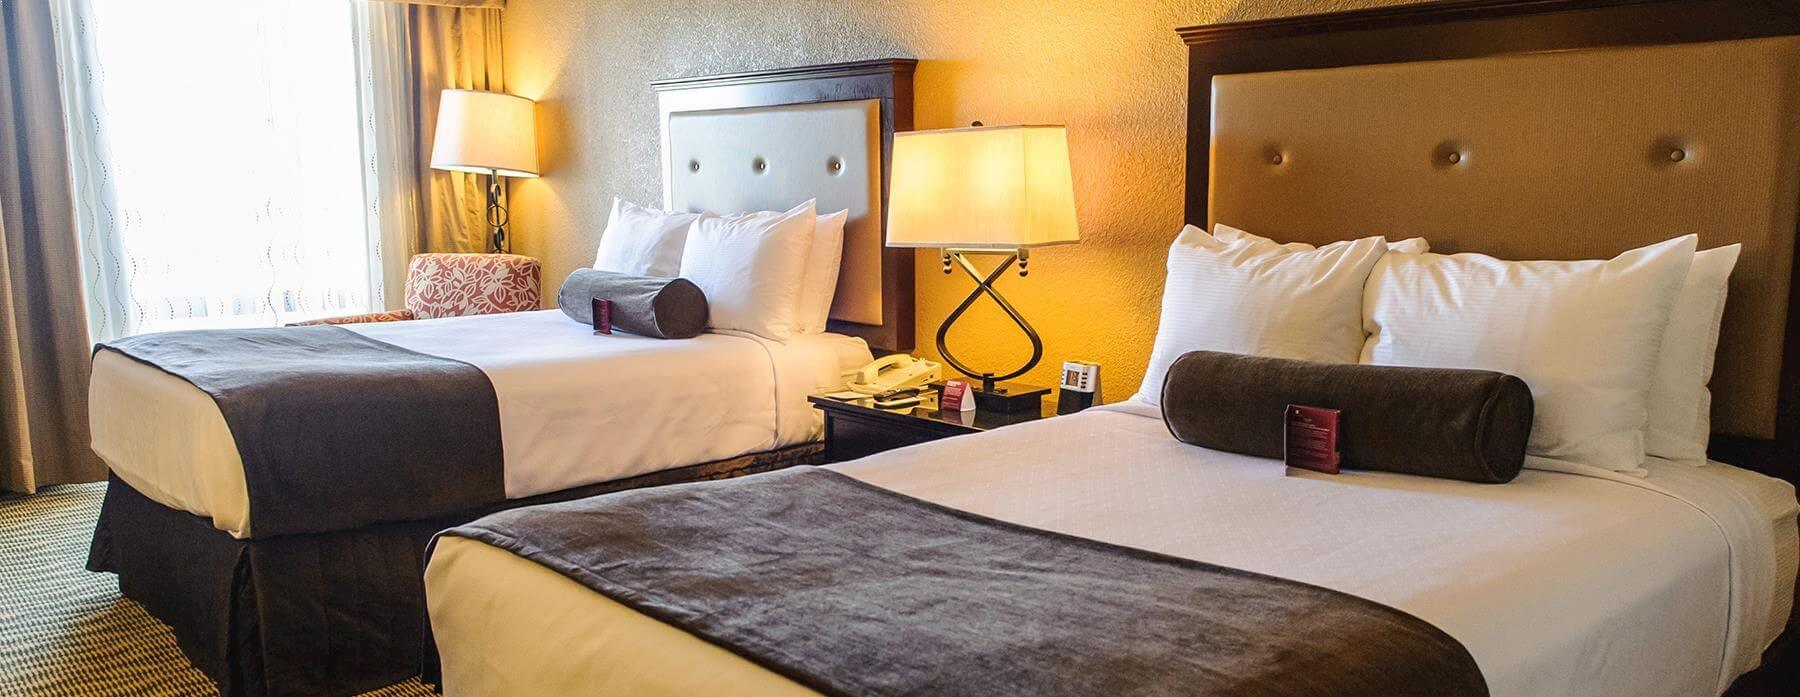 Crowne Plaza Jacksonville Airport Hotel